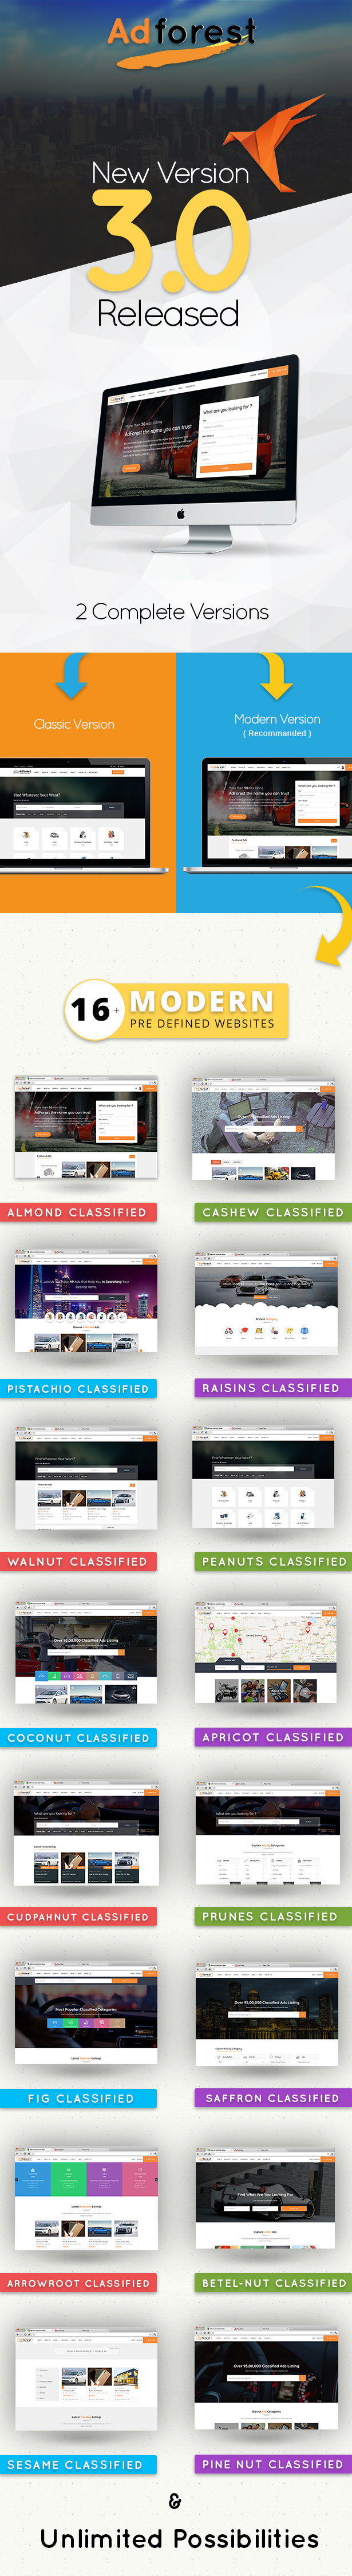 adforest5 - AdForest - Classified Ads WordPress Theme